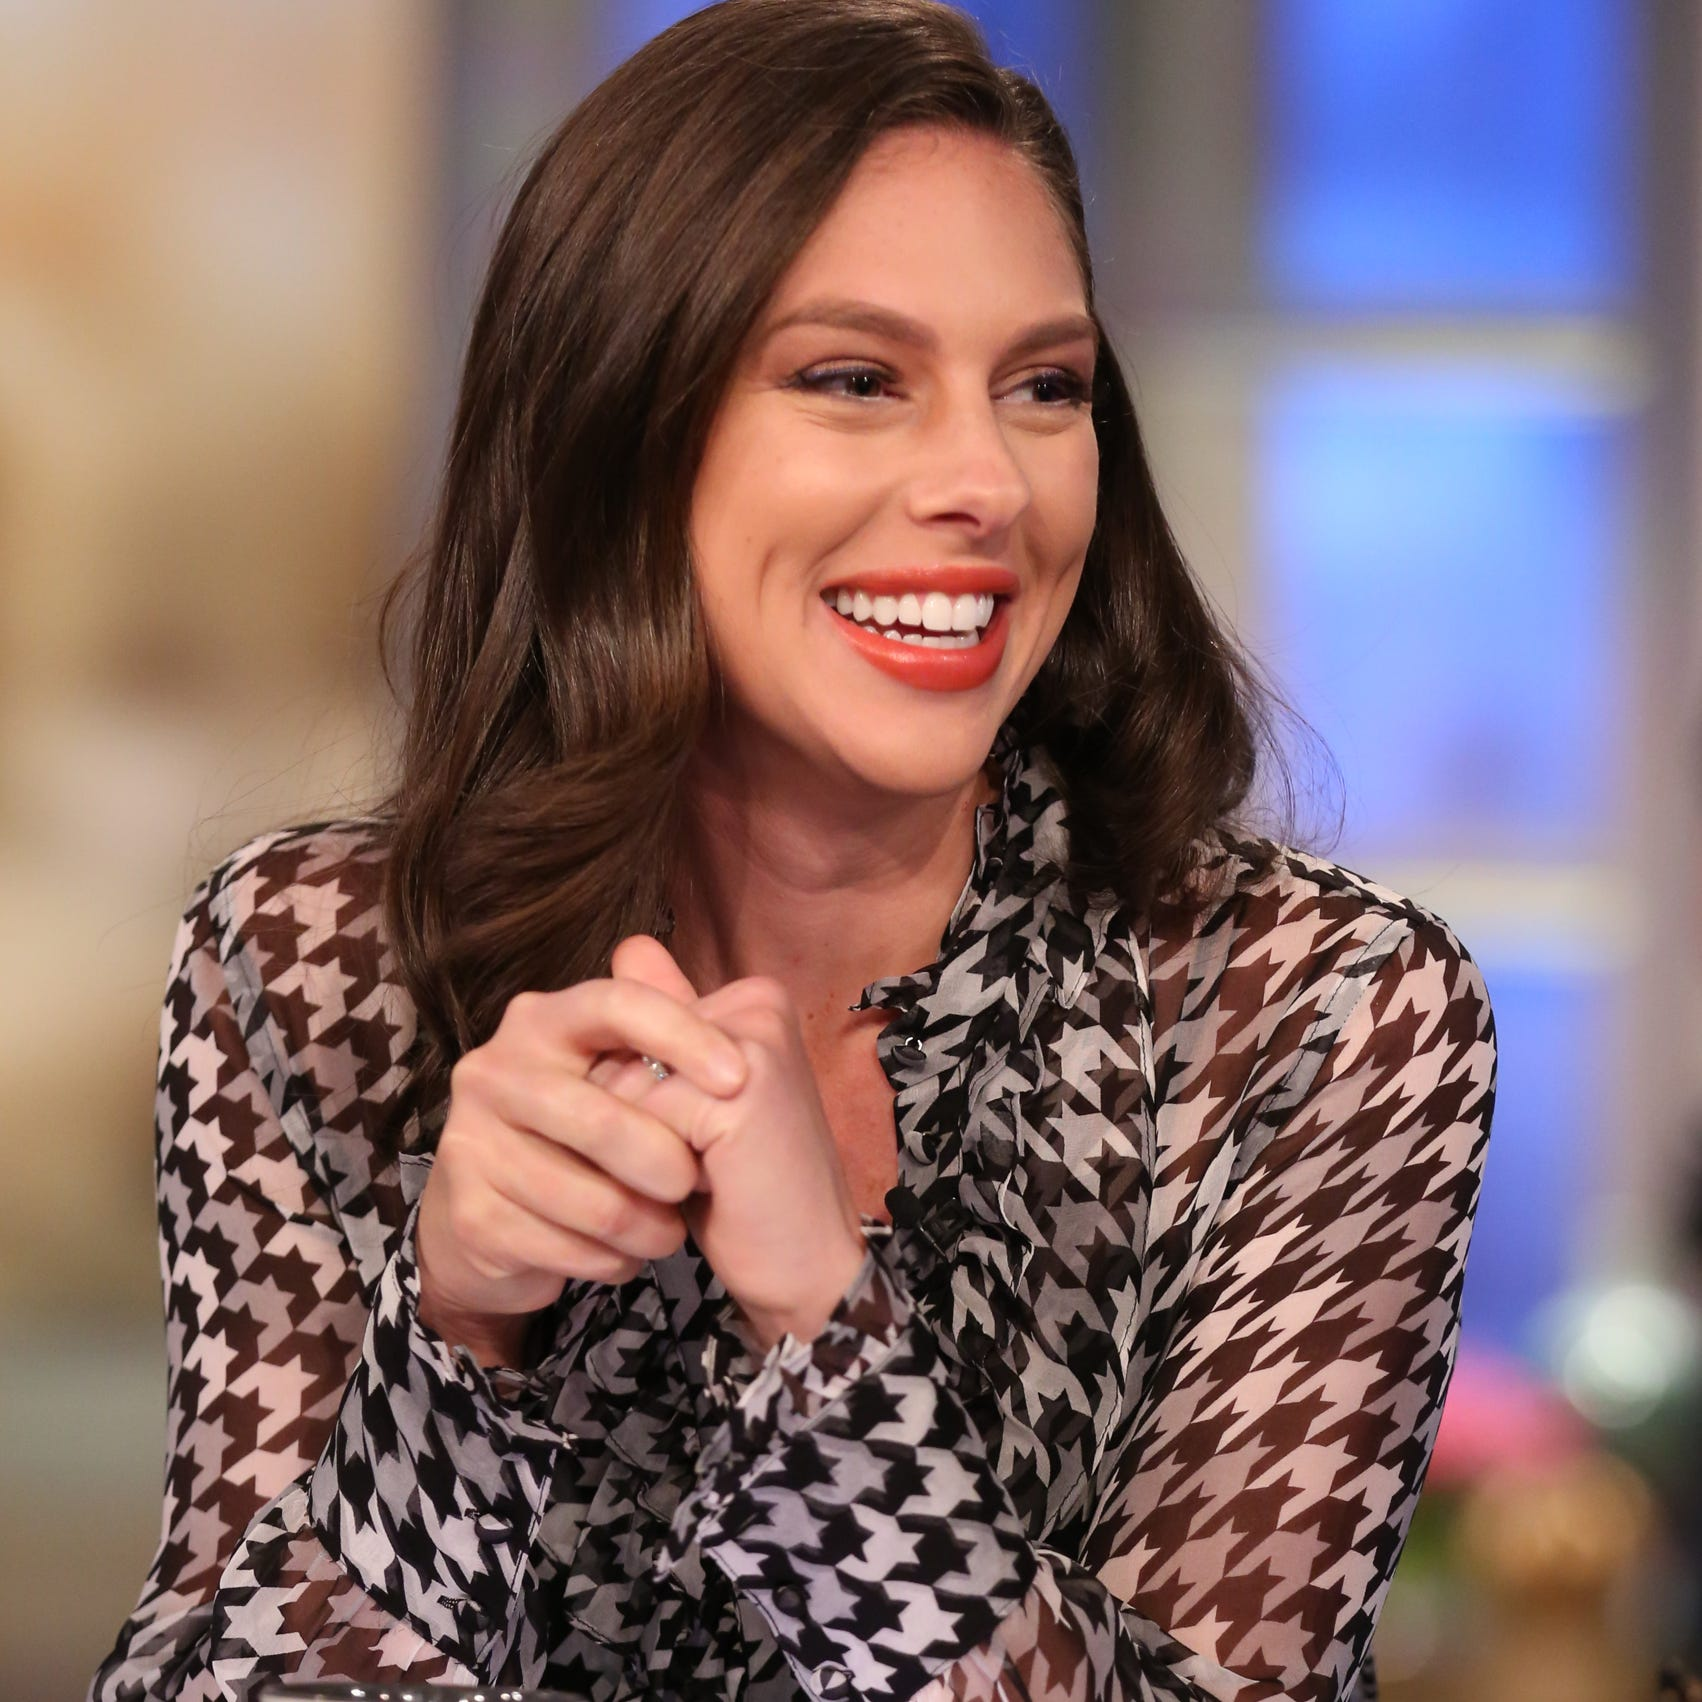 """The View"" host Abby Huntsman revealed she is expecting twins in 2019."